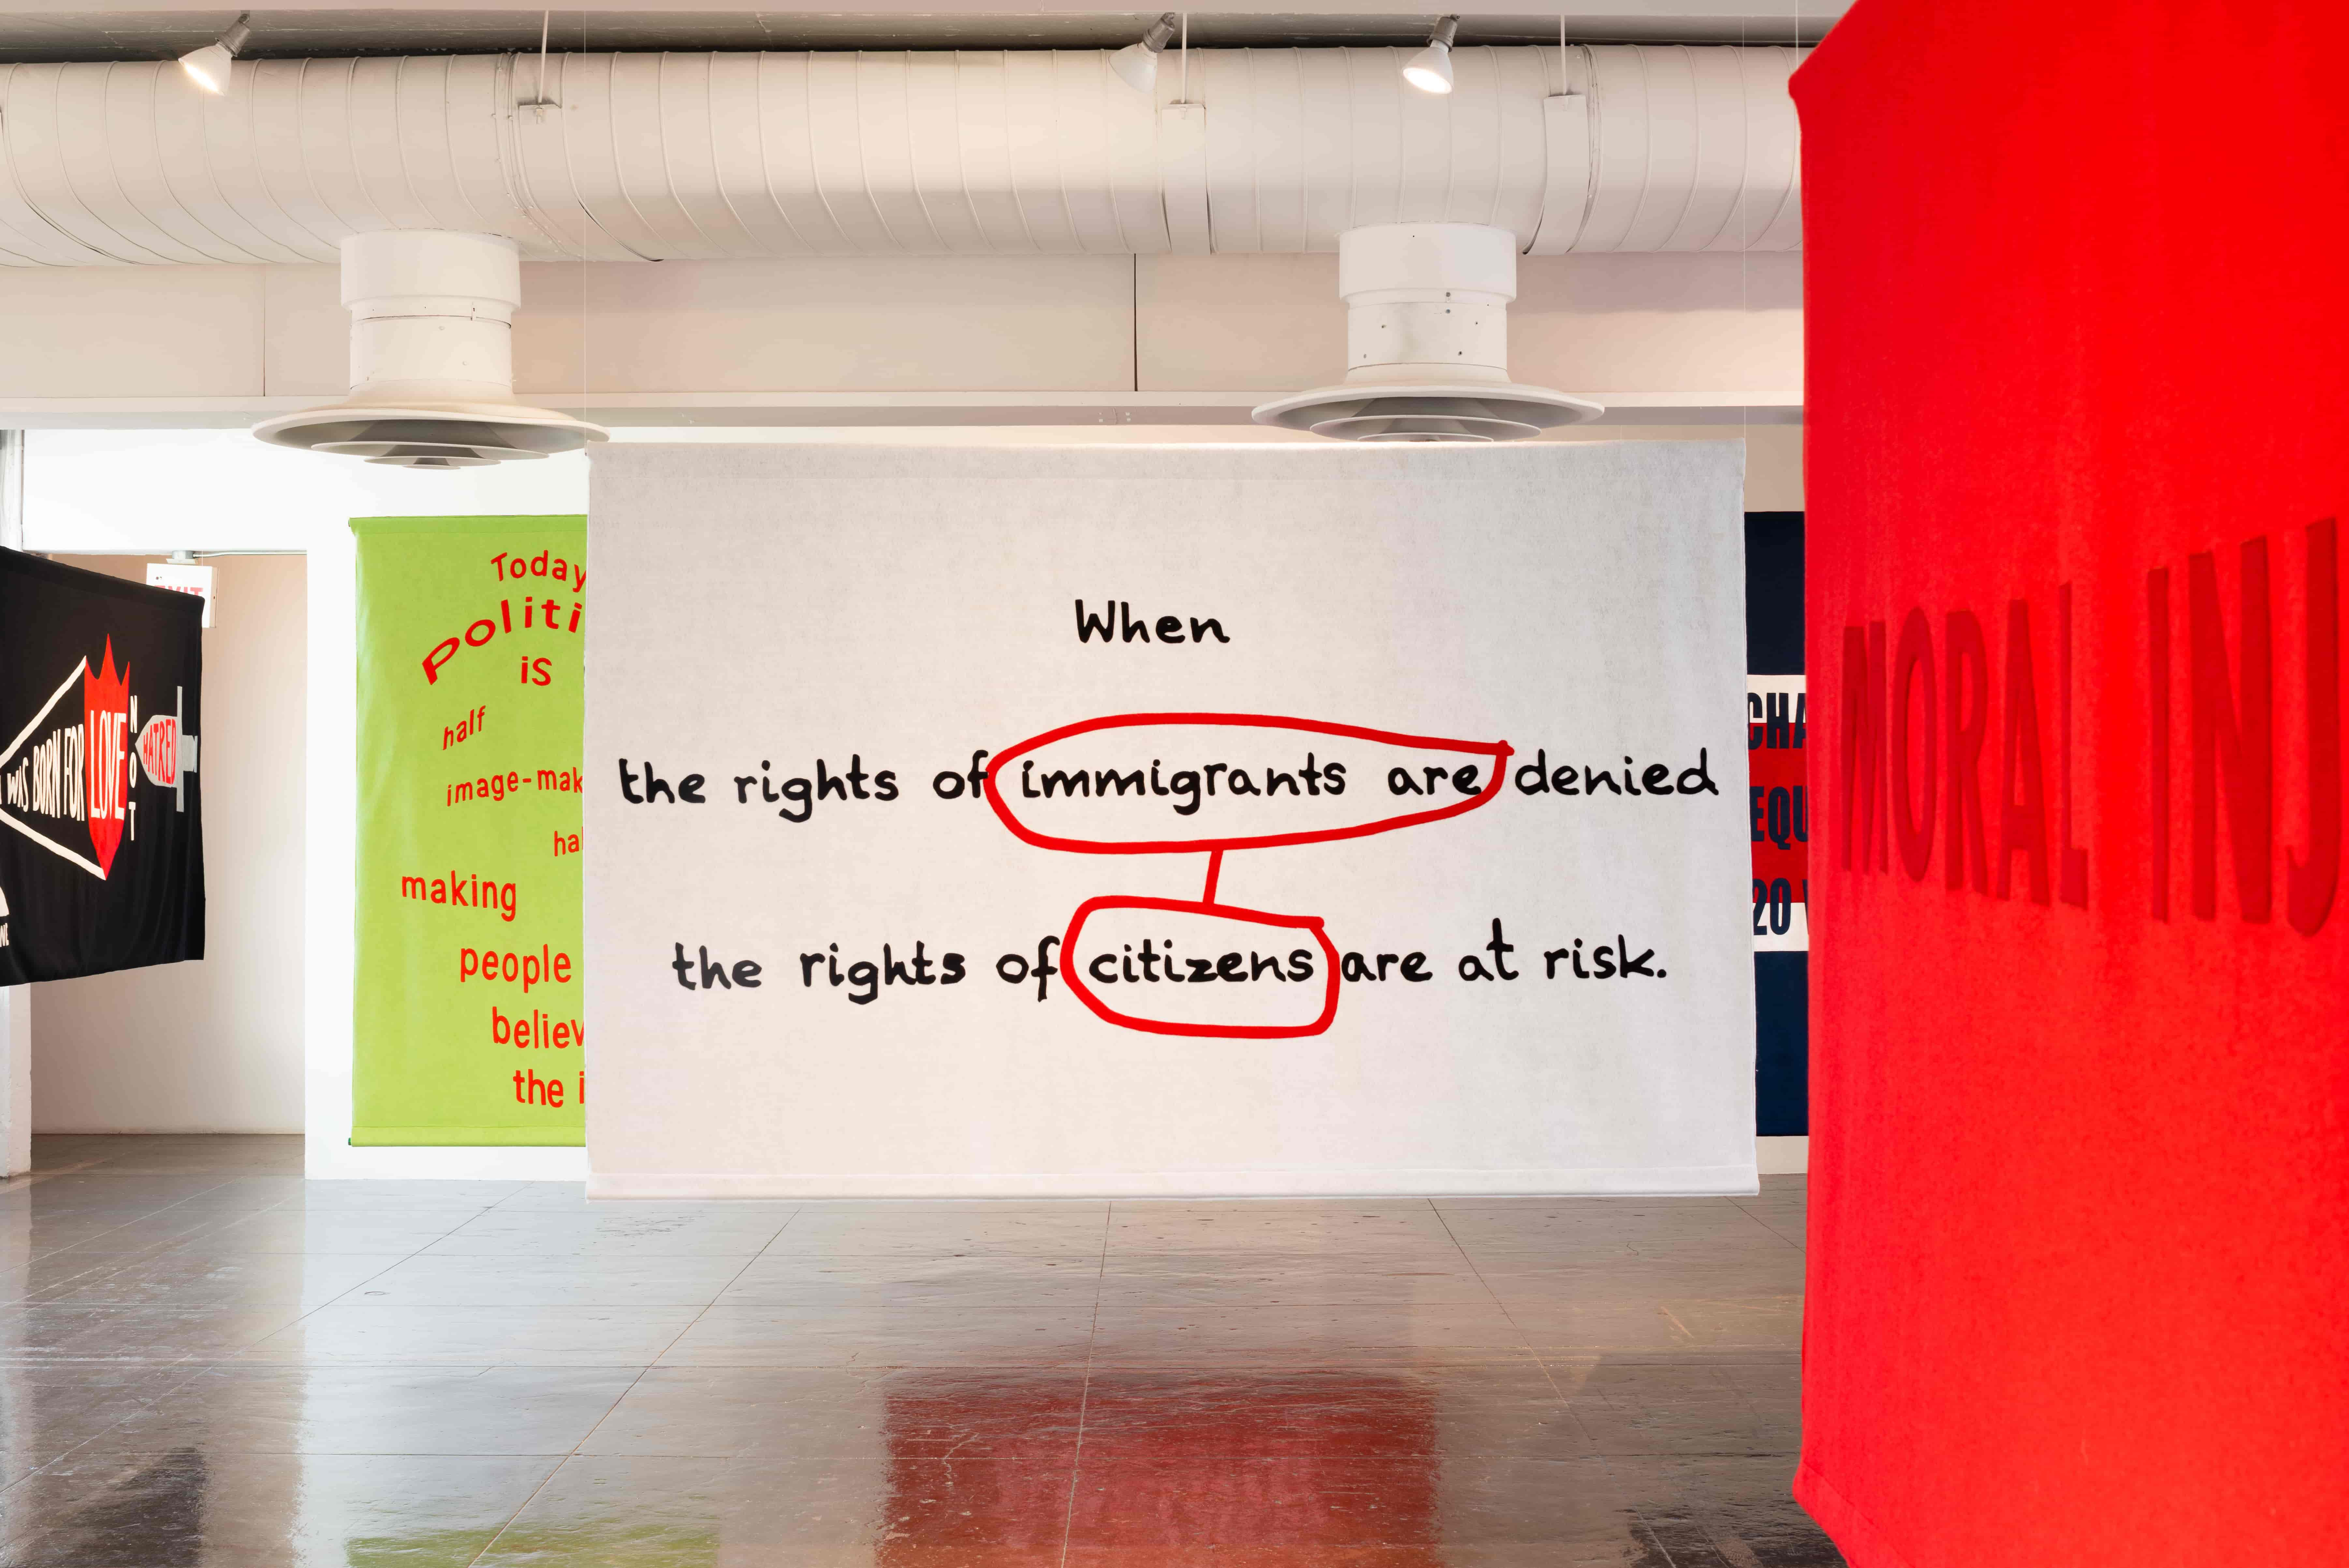 Tania Bruguera, When the rights of immigrants are denied the rights of citizens are at risk (2018). Felt banner. Image courtesy of Artpace